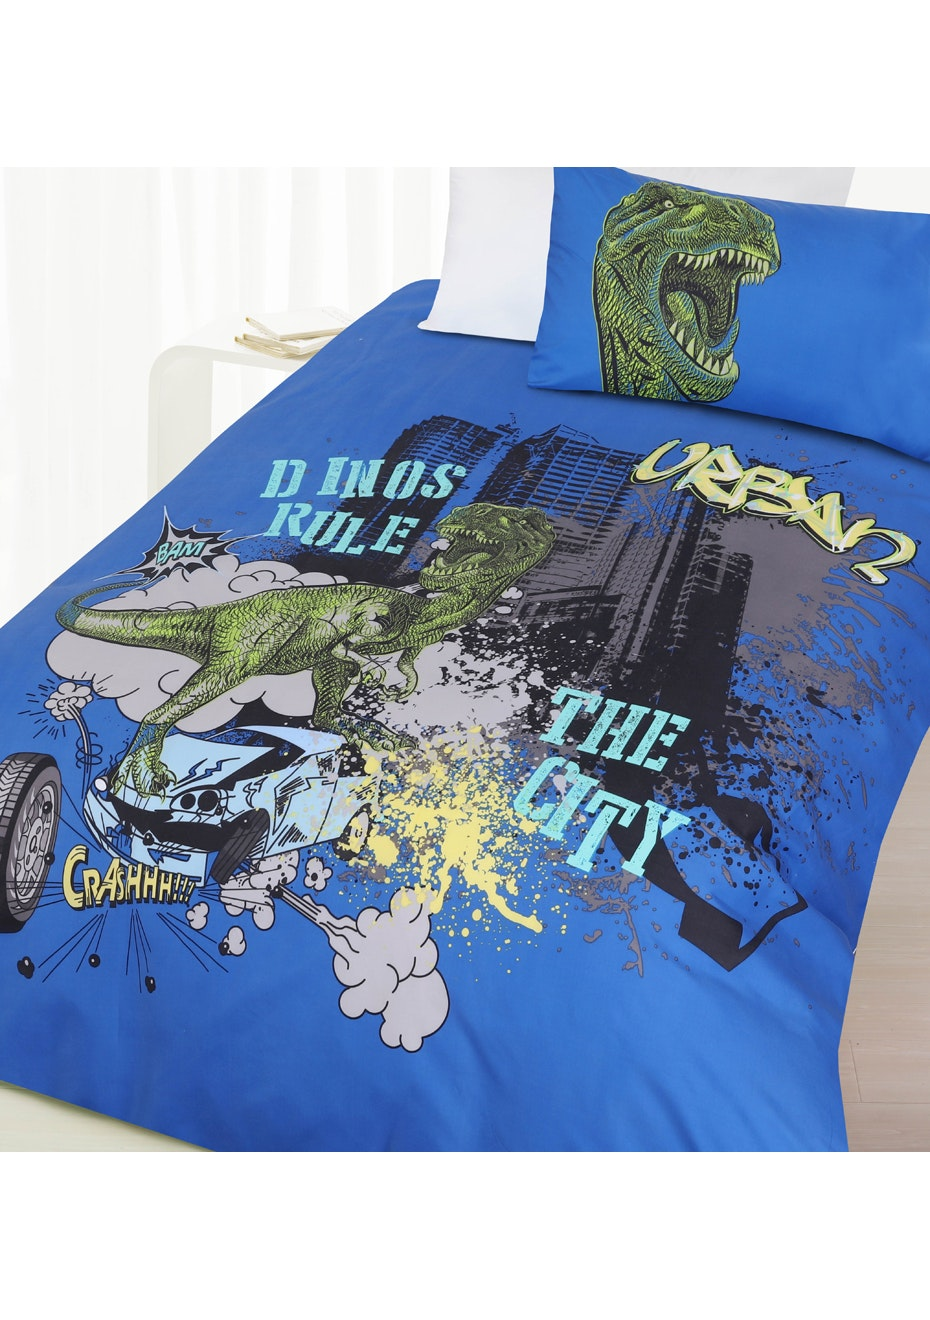 Dino City Glow in the Dark Quilt Cover Set - Double Bed